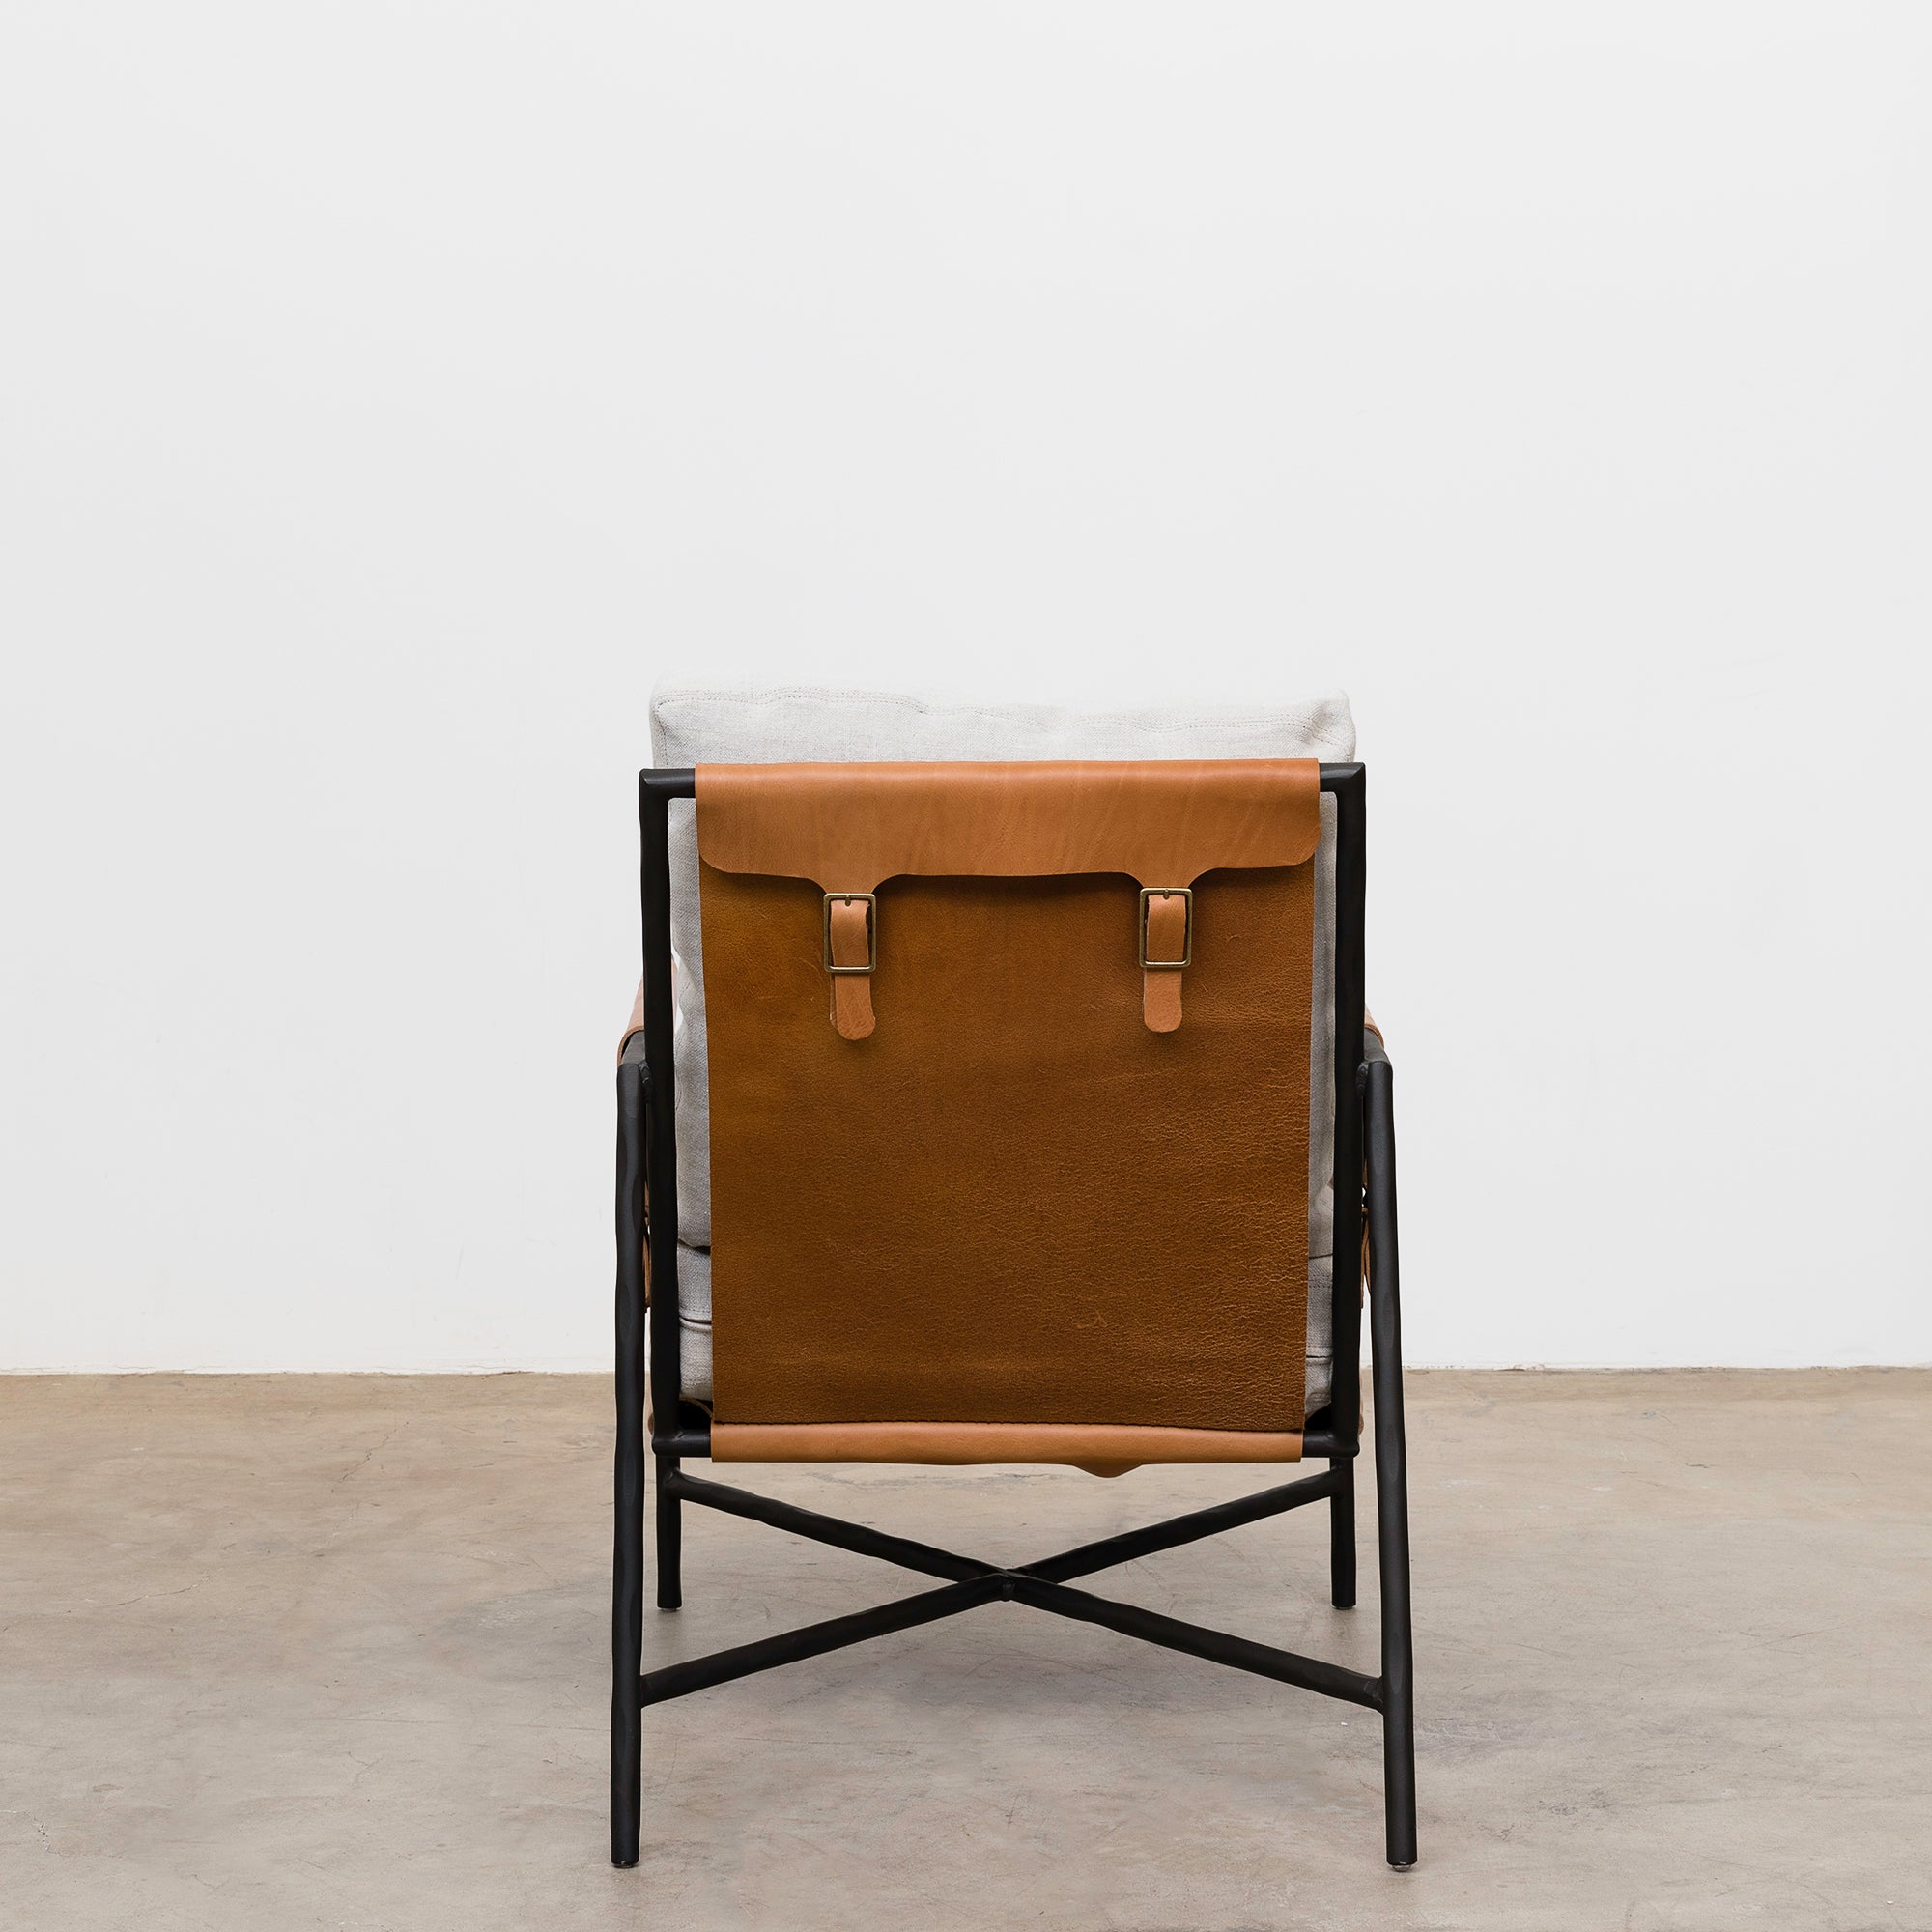 Morrow Leather Chair Morrow Leather Chair Morrow Leather Chair ...